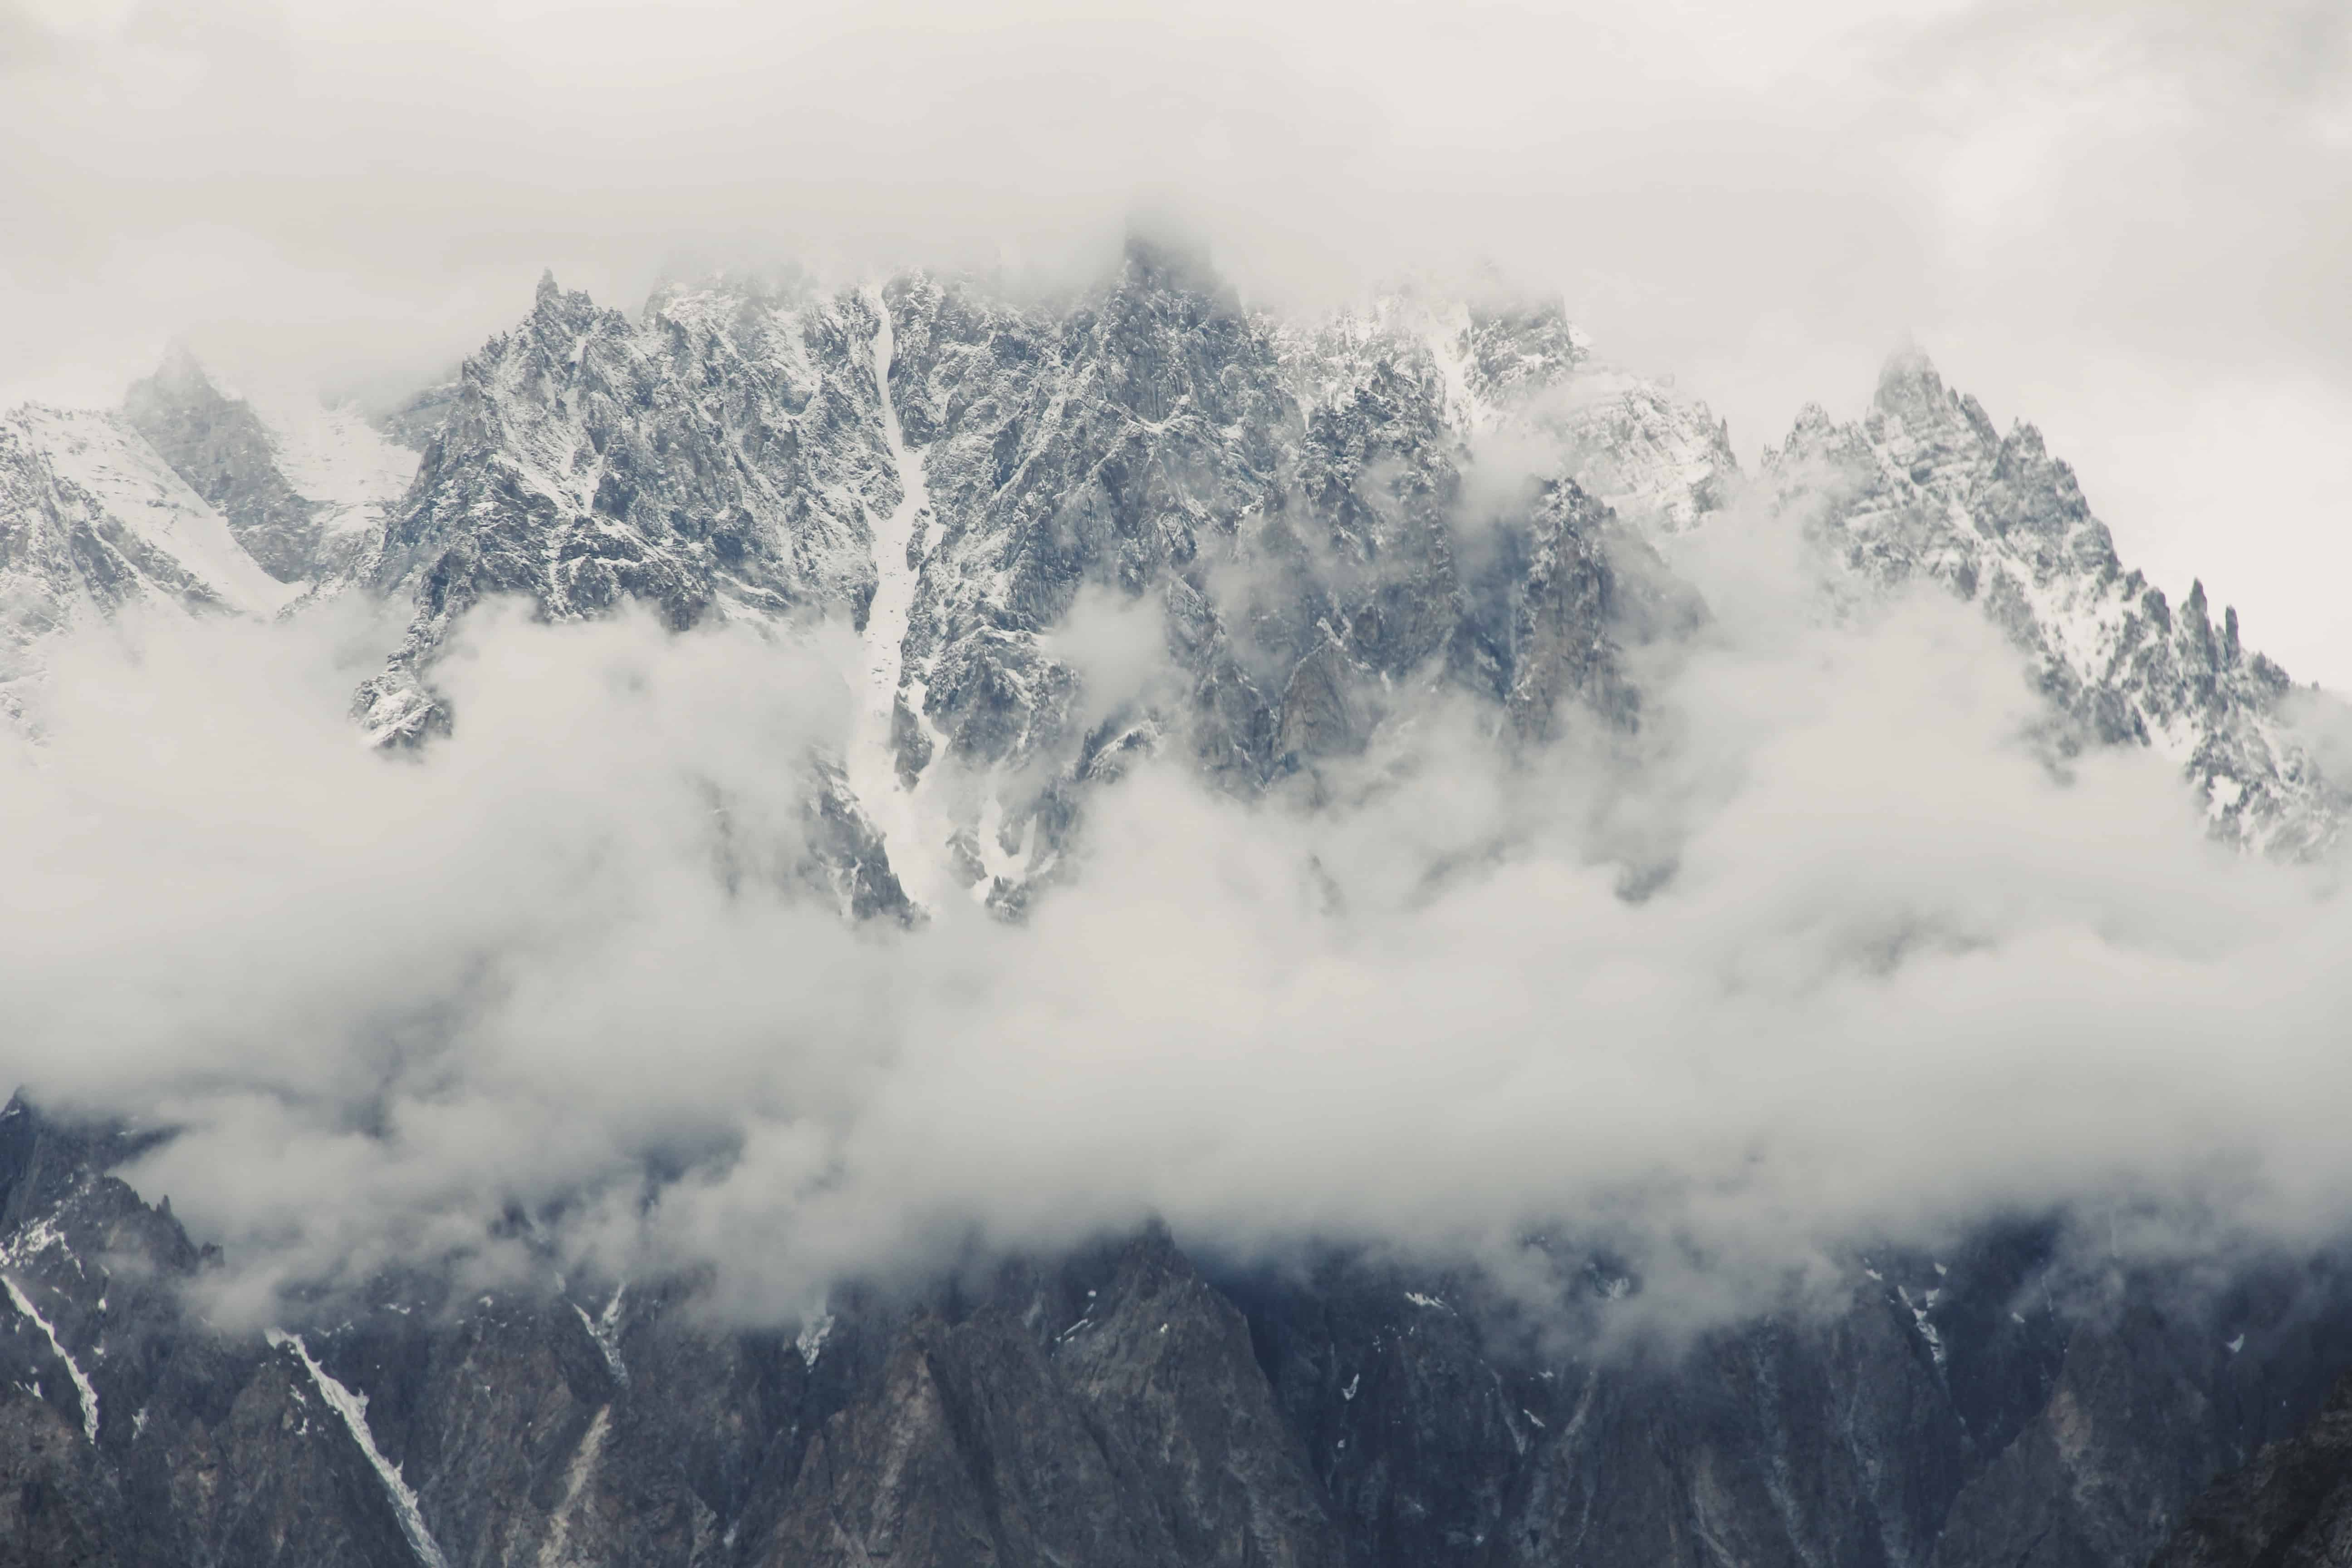 Passu glaciers on a cloudy day northern areas Hunza Valley Pakistan